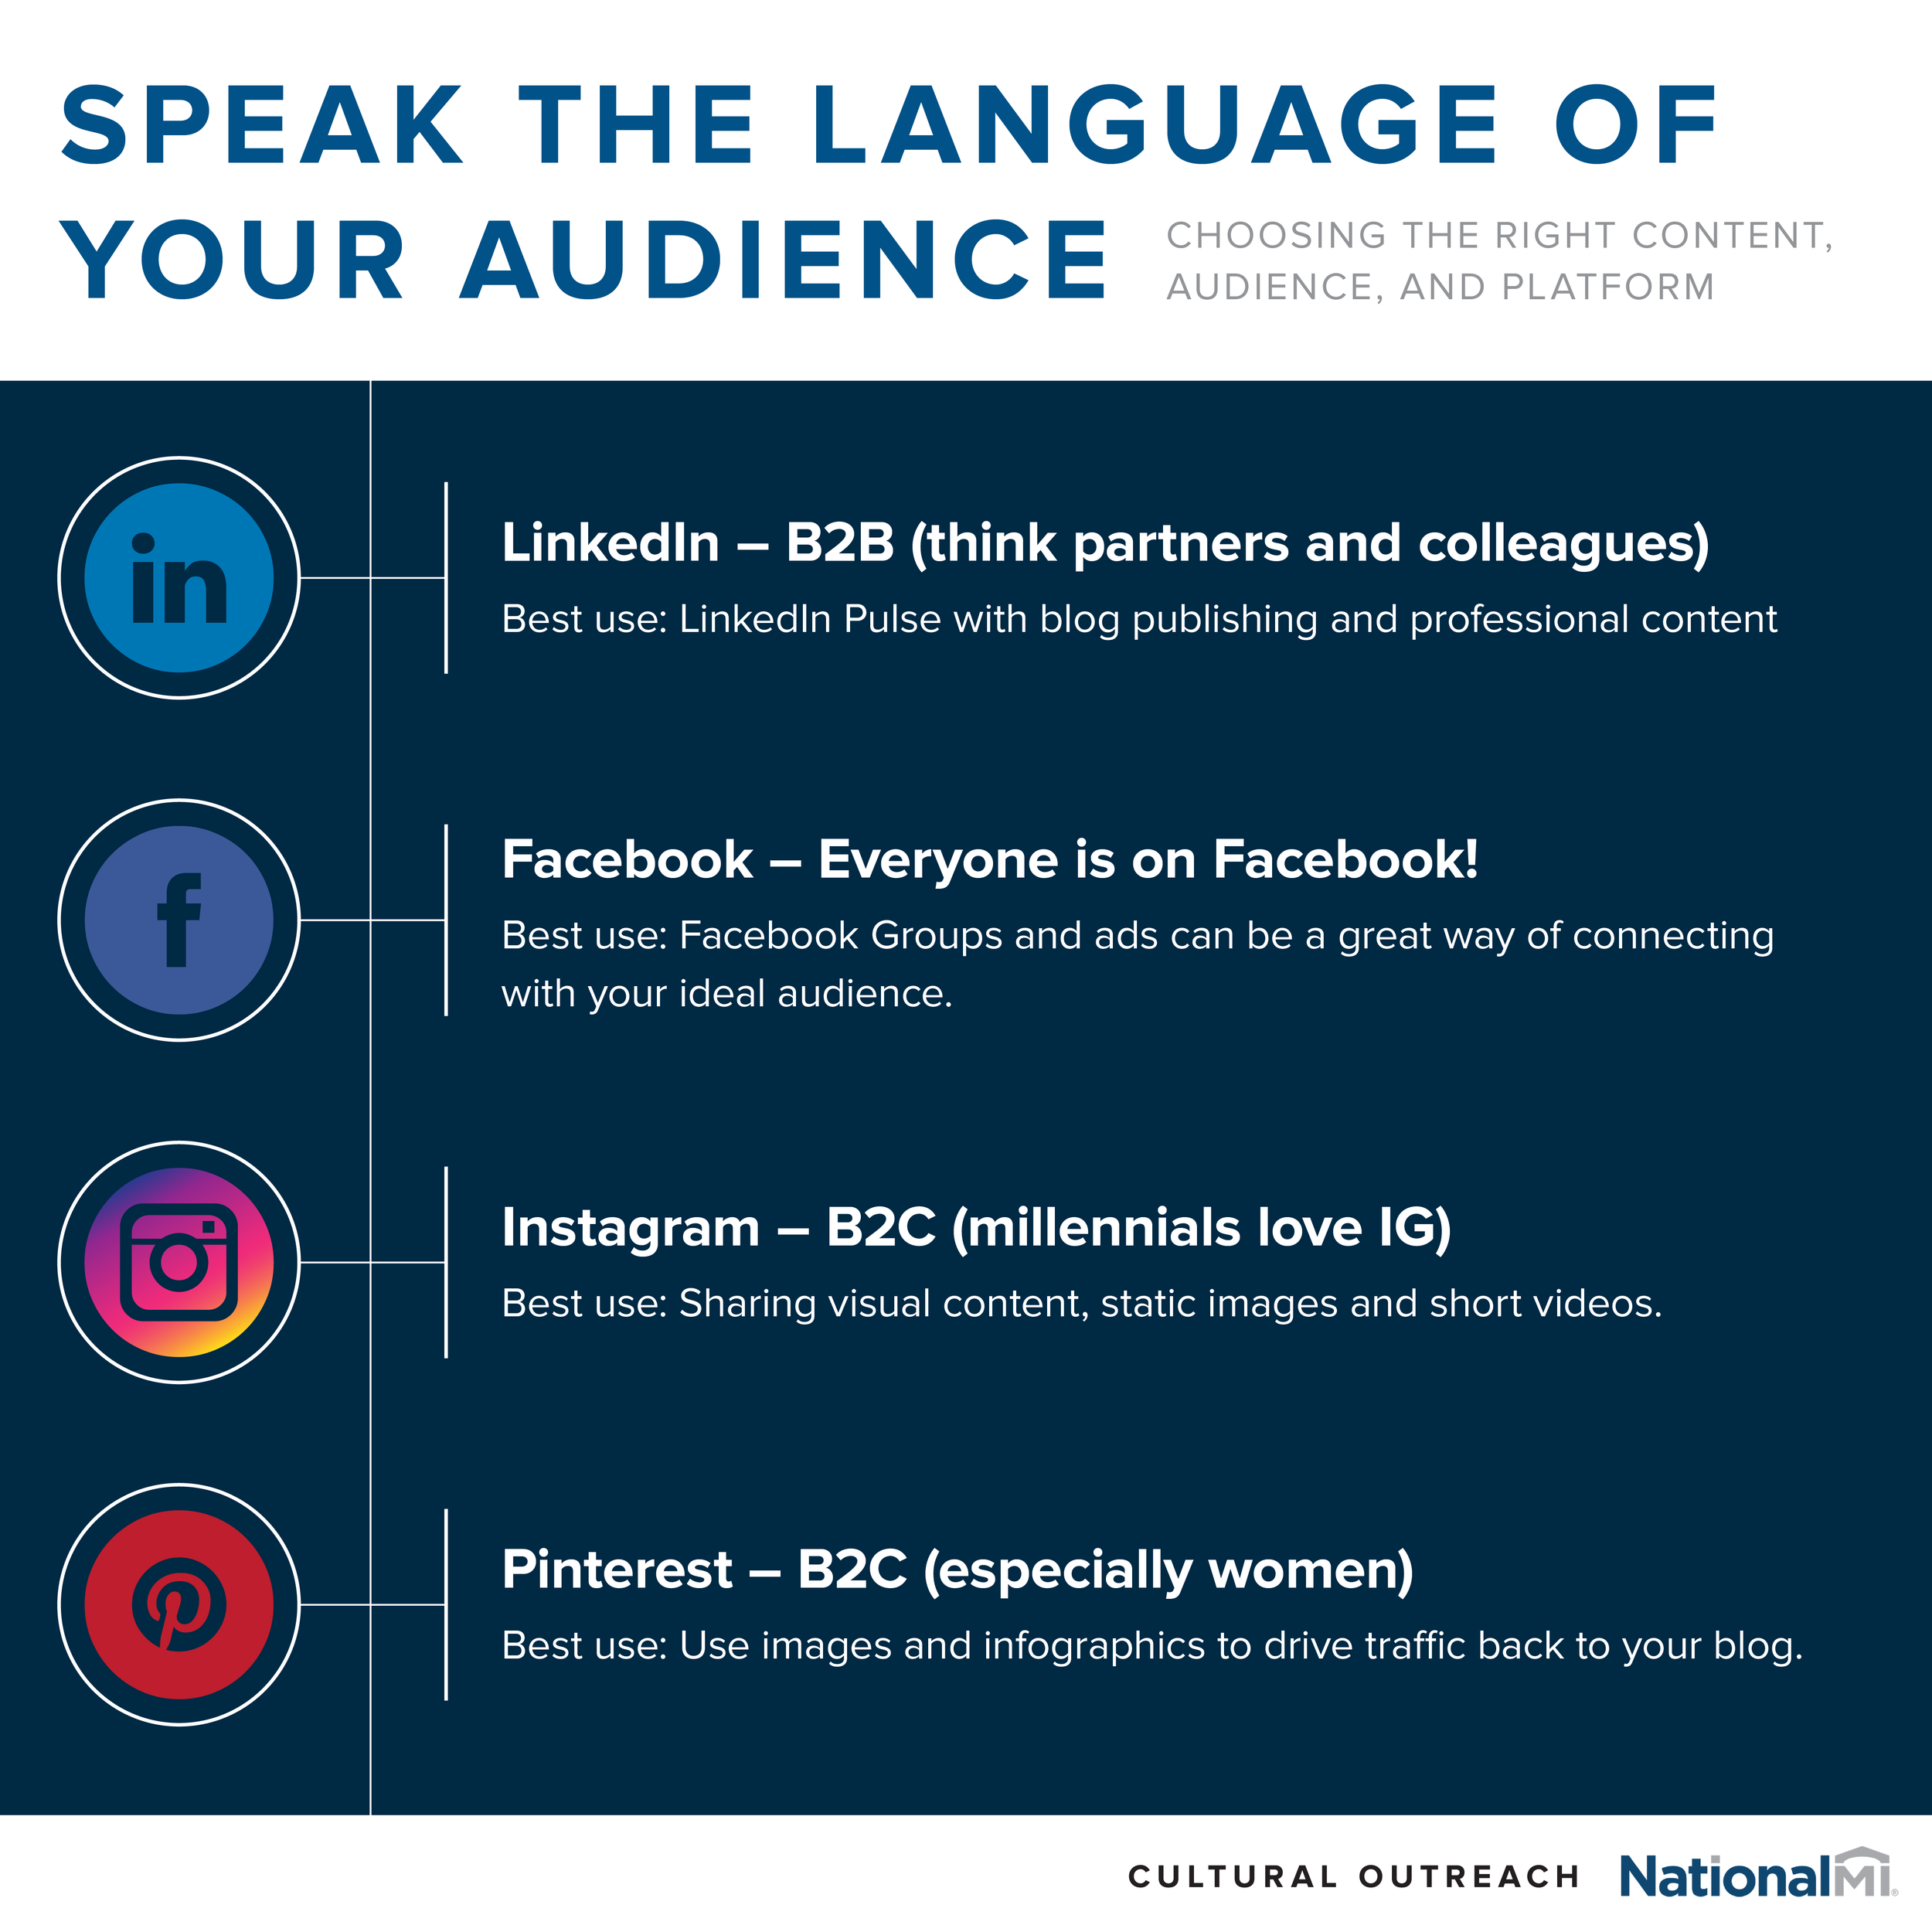 COS219_SpeakTheLanguage_Infographic_R2V1_05-8-19_NMIBlue-01.png